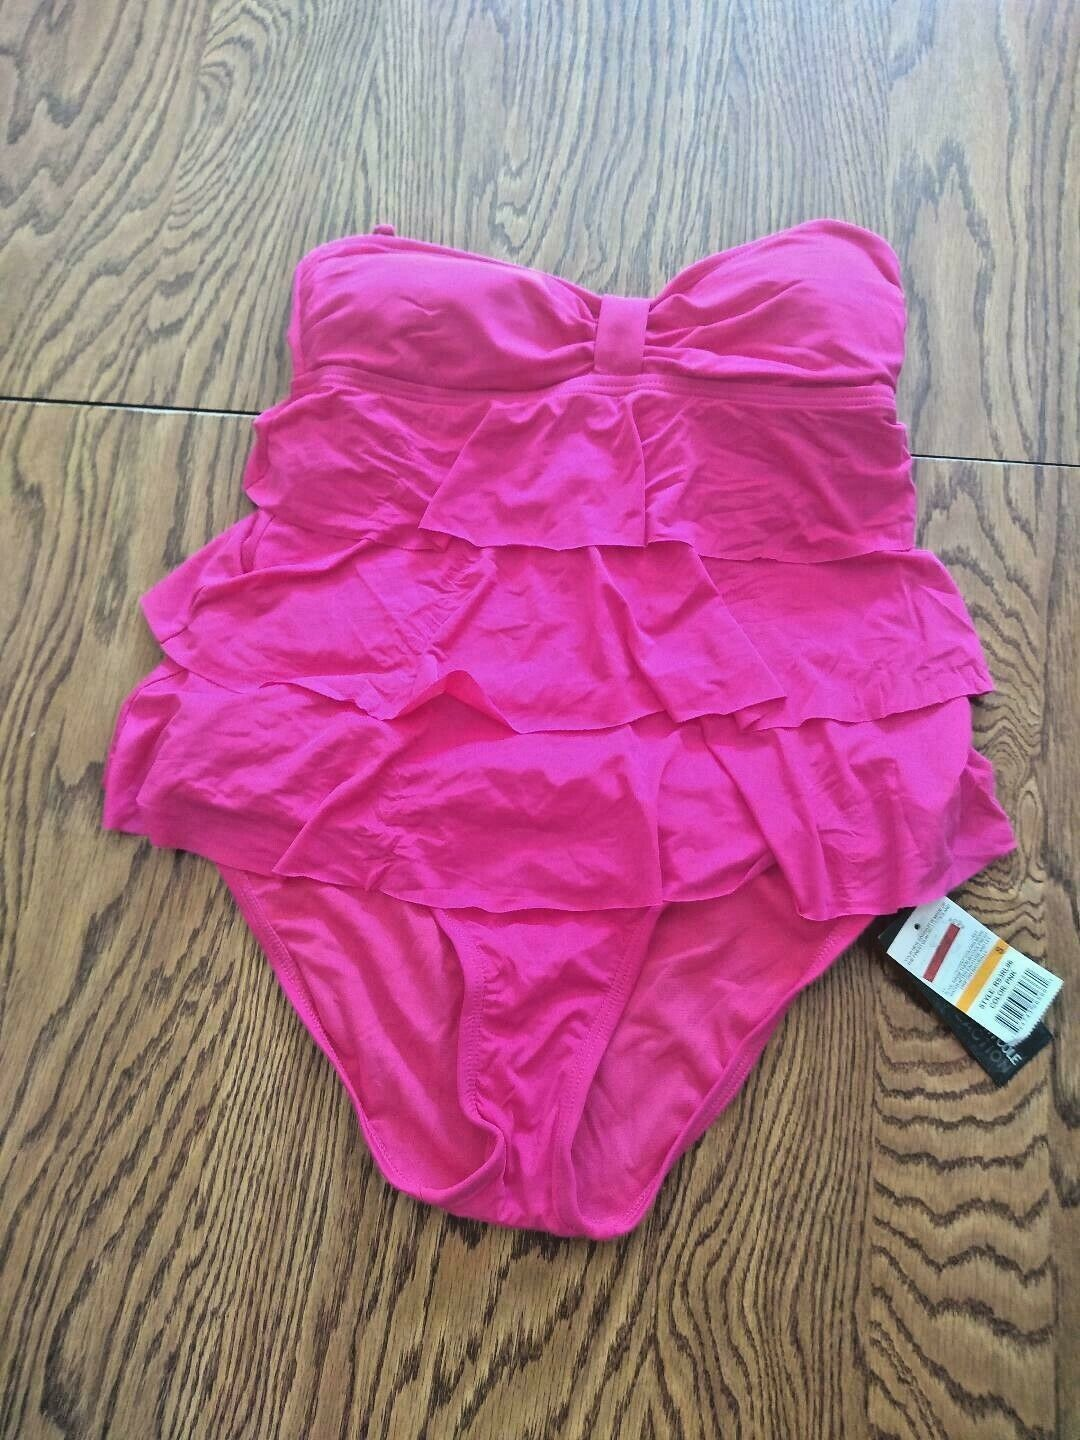 Kenneth Cole Reaction Pink Two Piece Swimwear Size Small